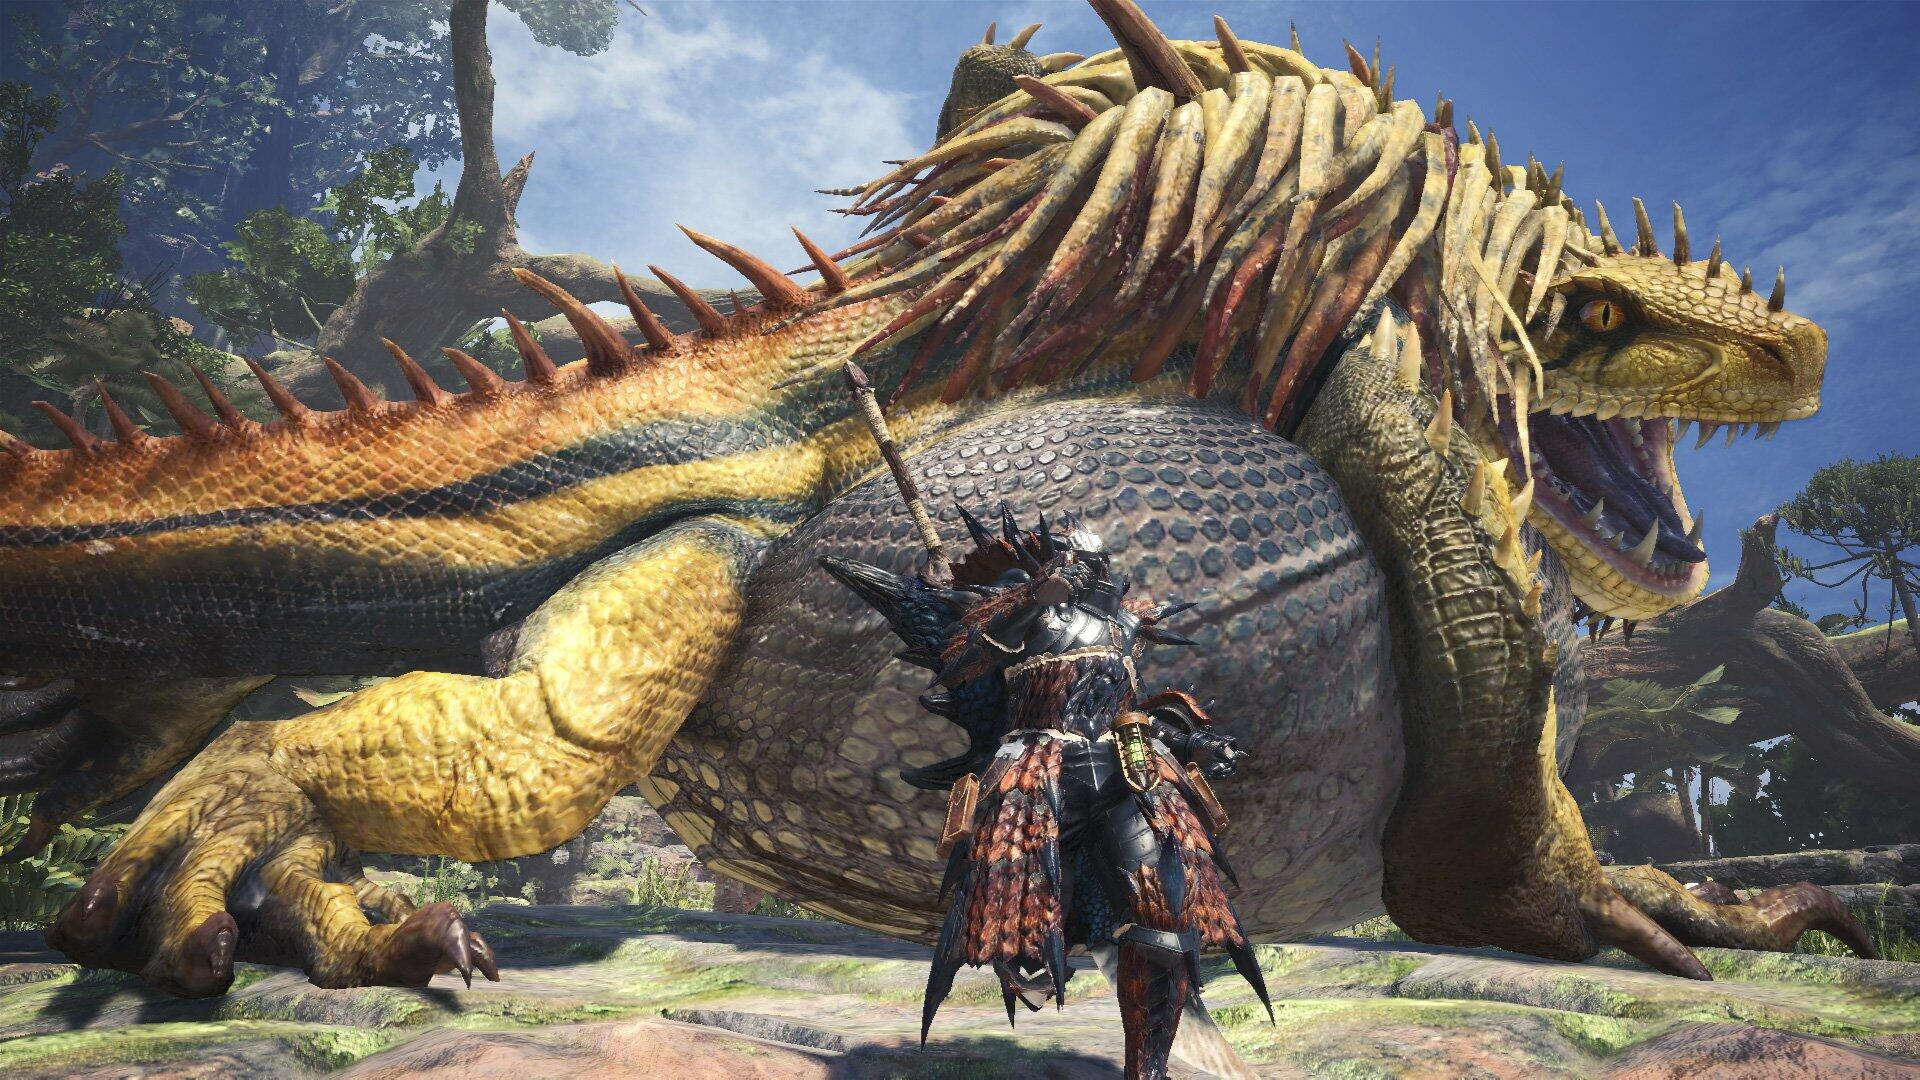 Monster Hunter: World and Prey Come to Xbox Game Pass This Month